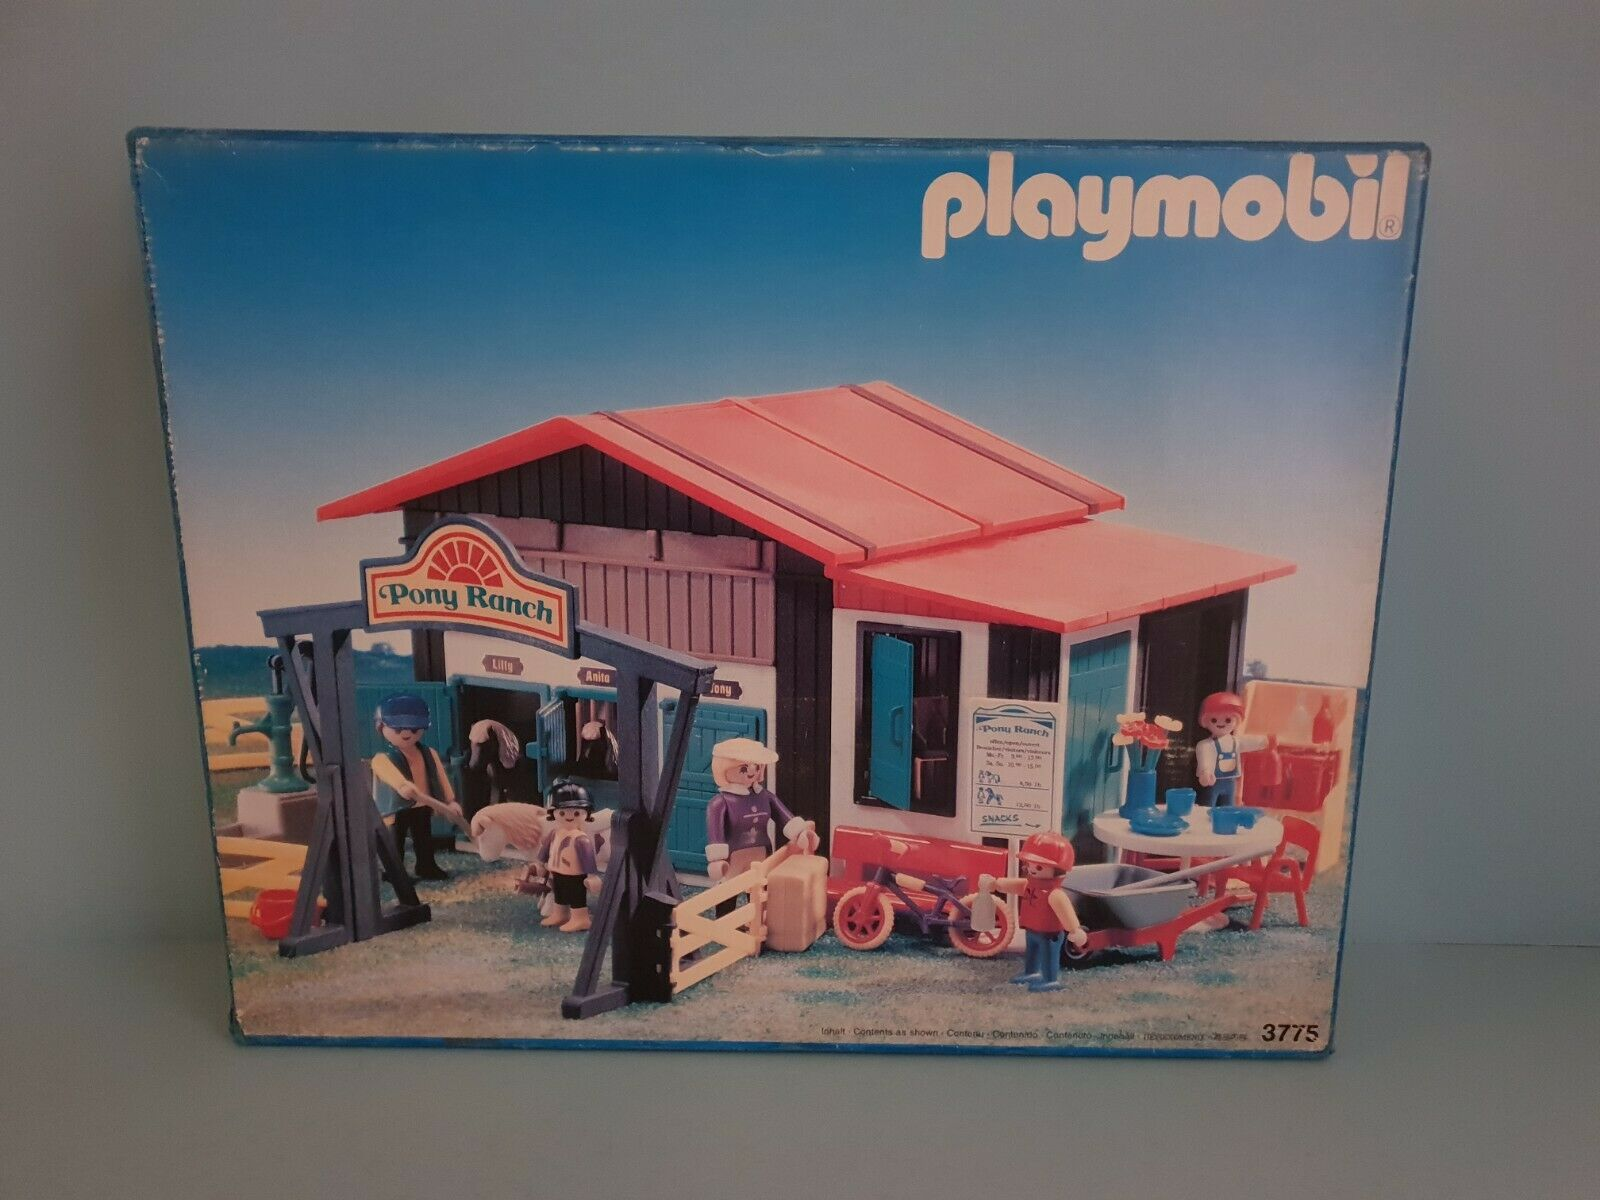 Playmobil 3775 Pony Ranch OVP Vintage Rare